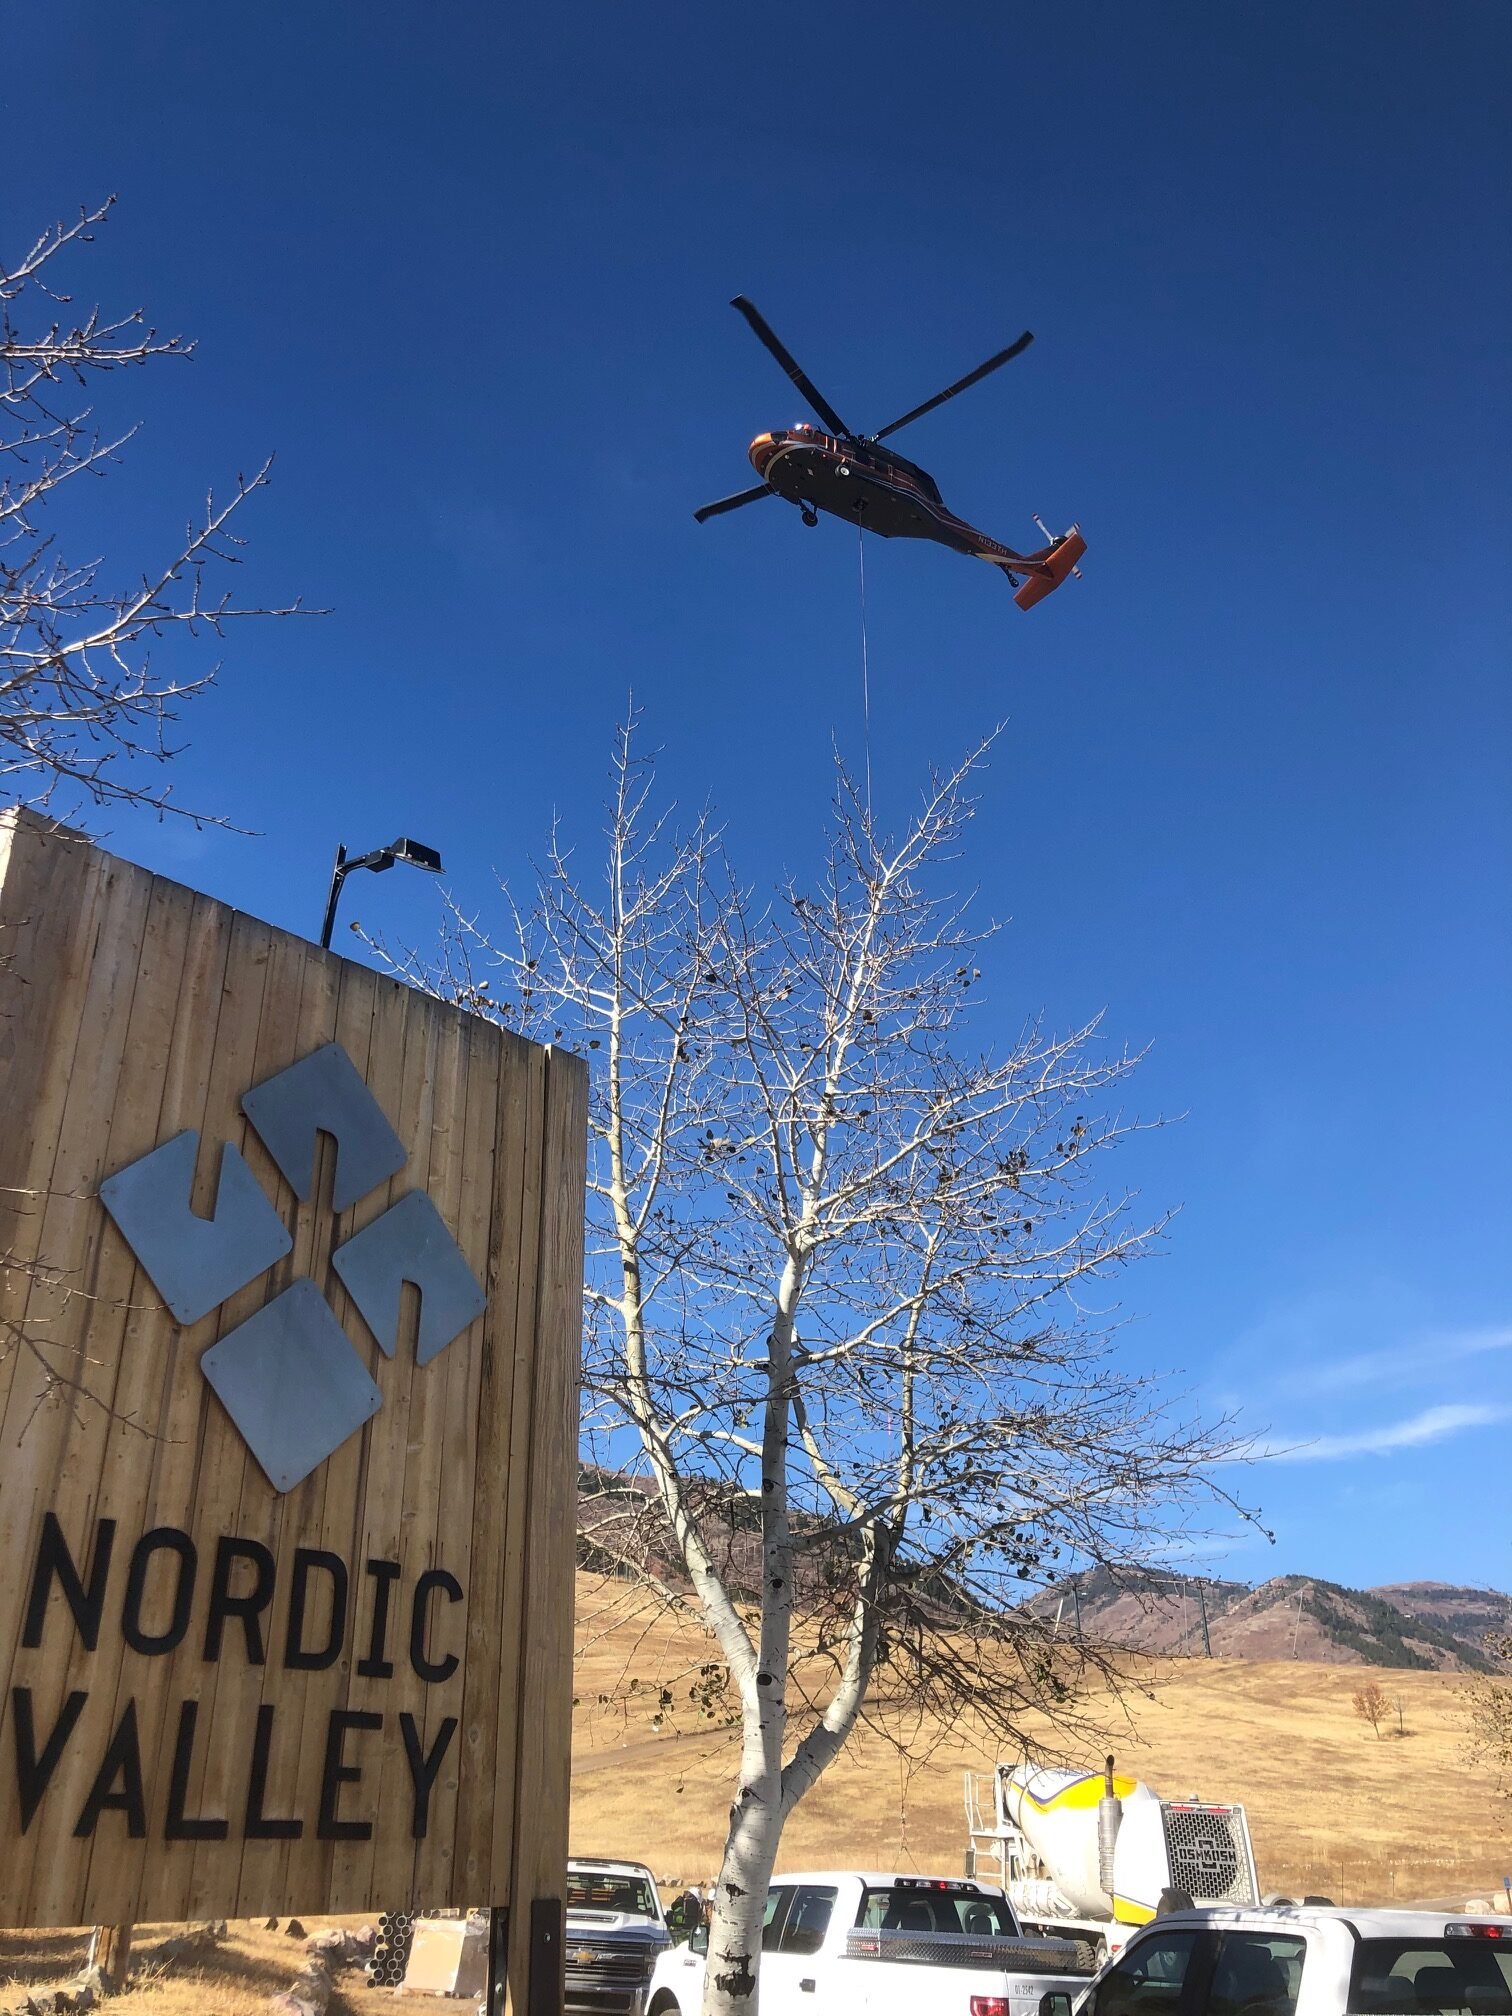 Helicopter hauling parts up the mountain